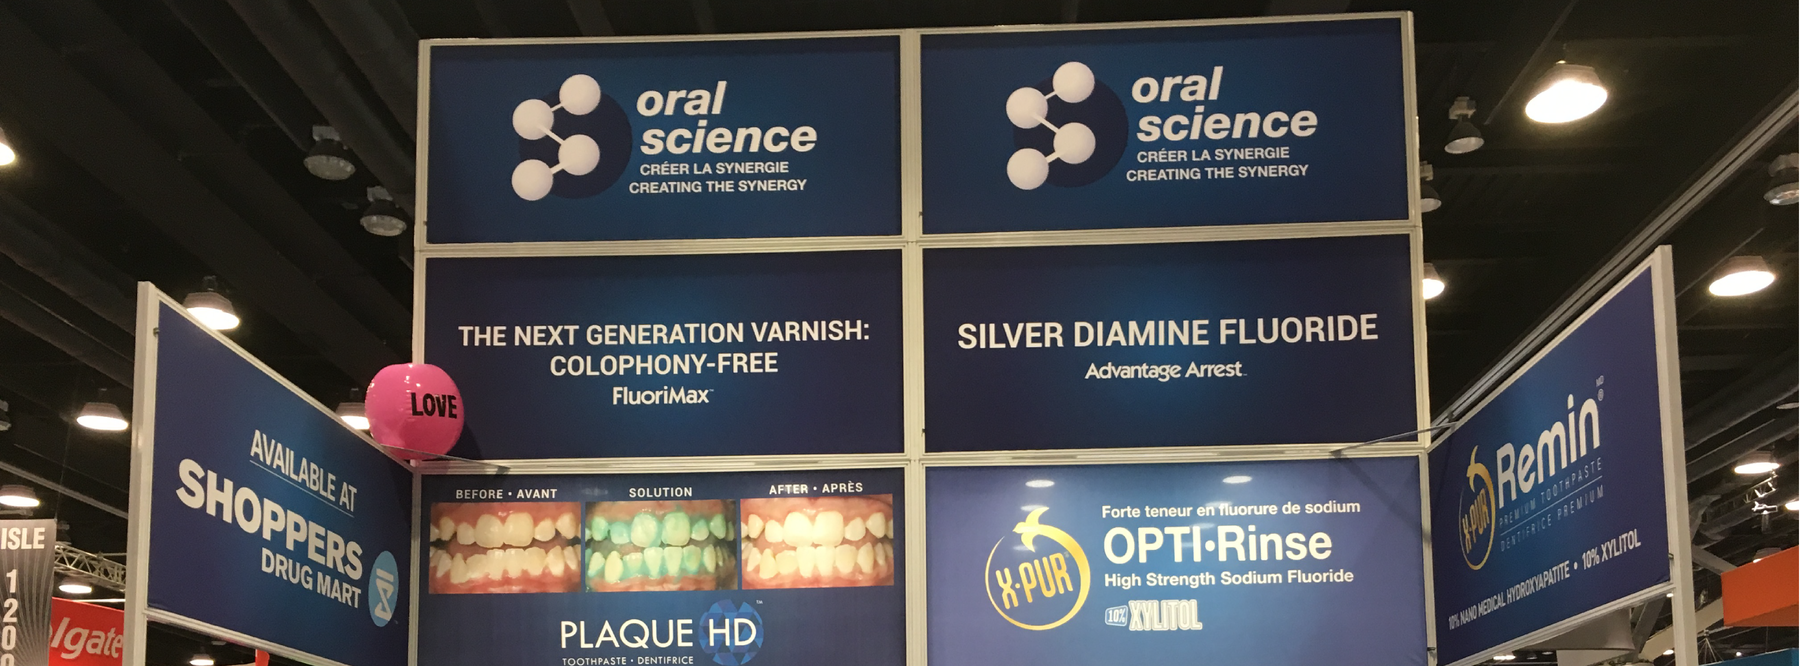 Oral Science Spreads #LOVE at the 2018 Pacific Dental Conference